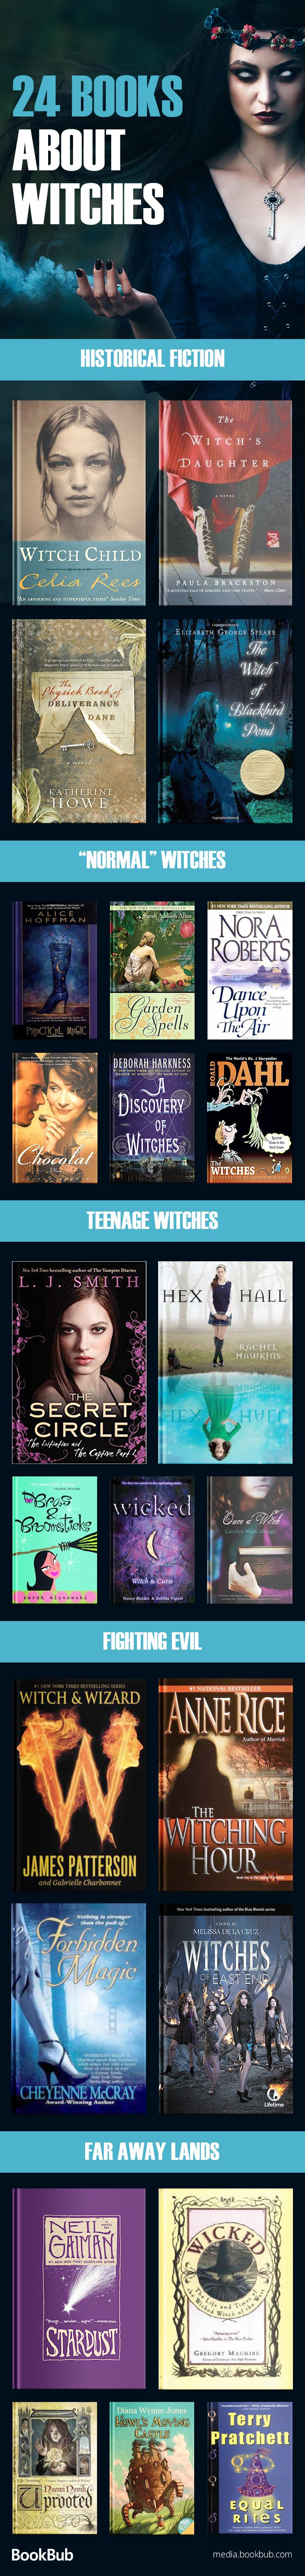 A great list of books about witches. If you're looking for books for Halloween, look no further. Featuring both enchanting and creepy reads for adult and for teens.